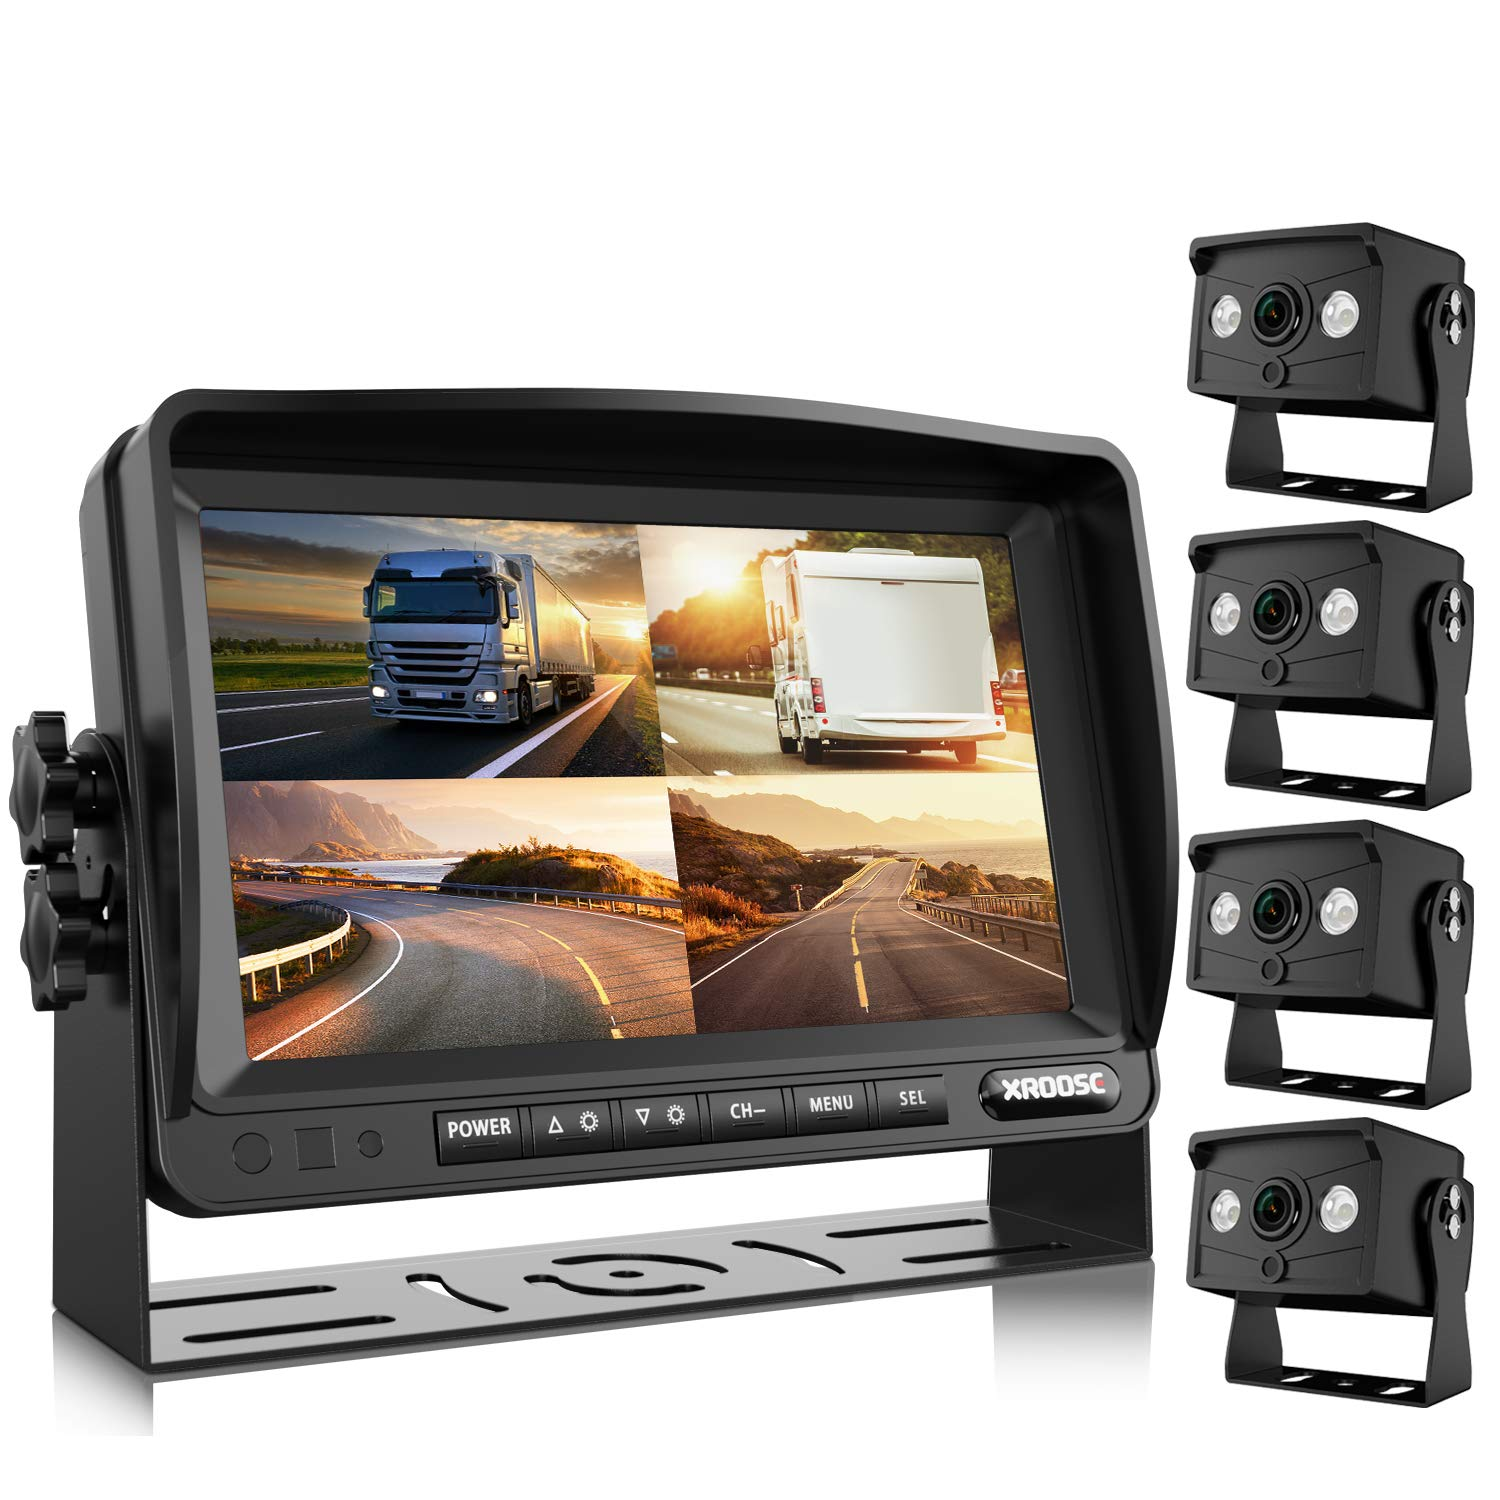 """Backup Camera with 7"""" Monitor Built-in Upgraded Recorder for RV Semi Box Truck Trailer 4 Quad Screen HD Waterproof IR Rearview Backing Up Camera System Great for Reversing/Driving by Xroose"""